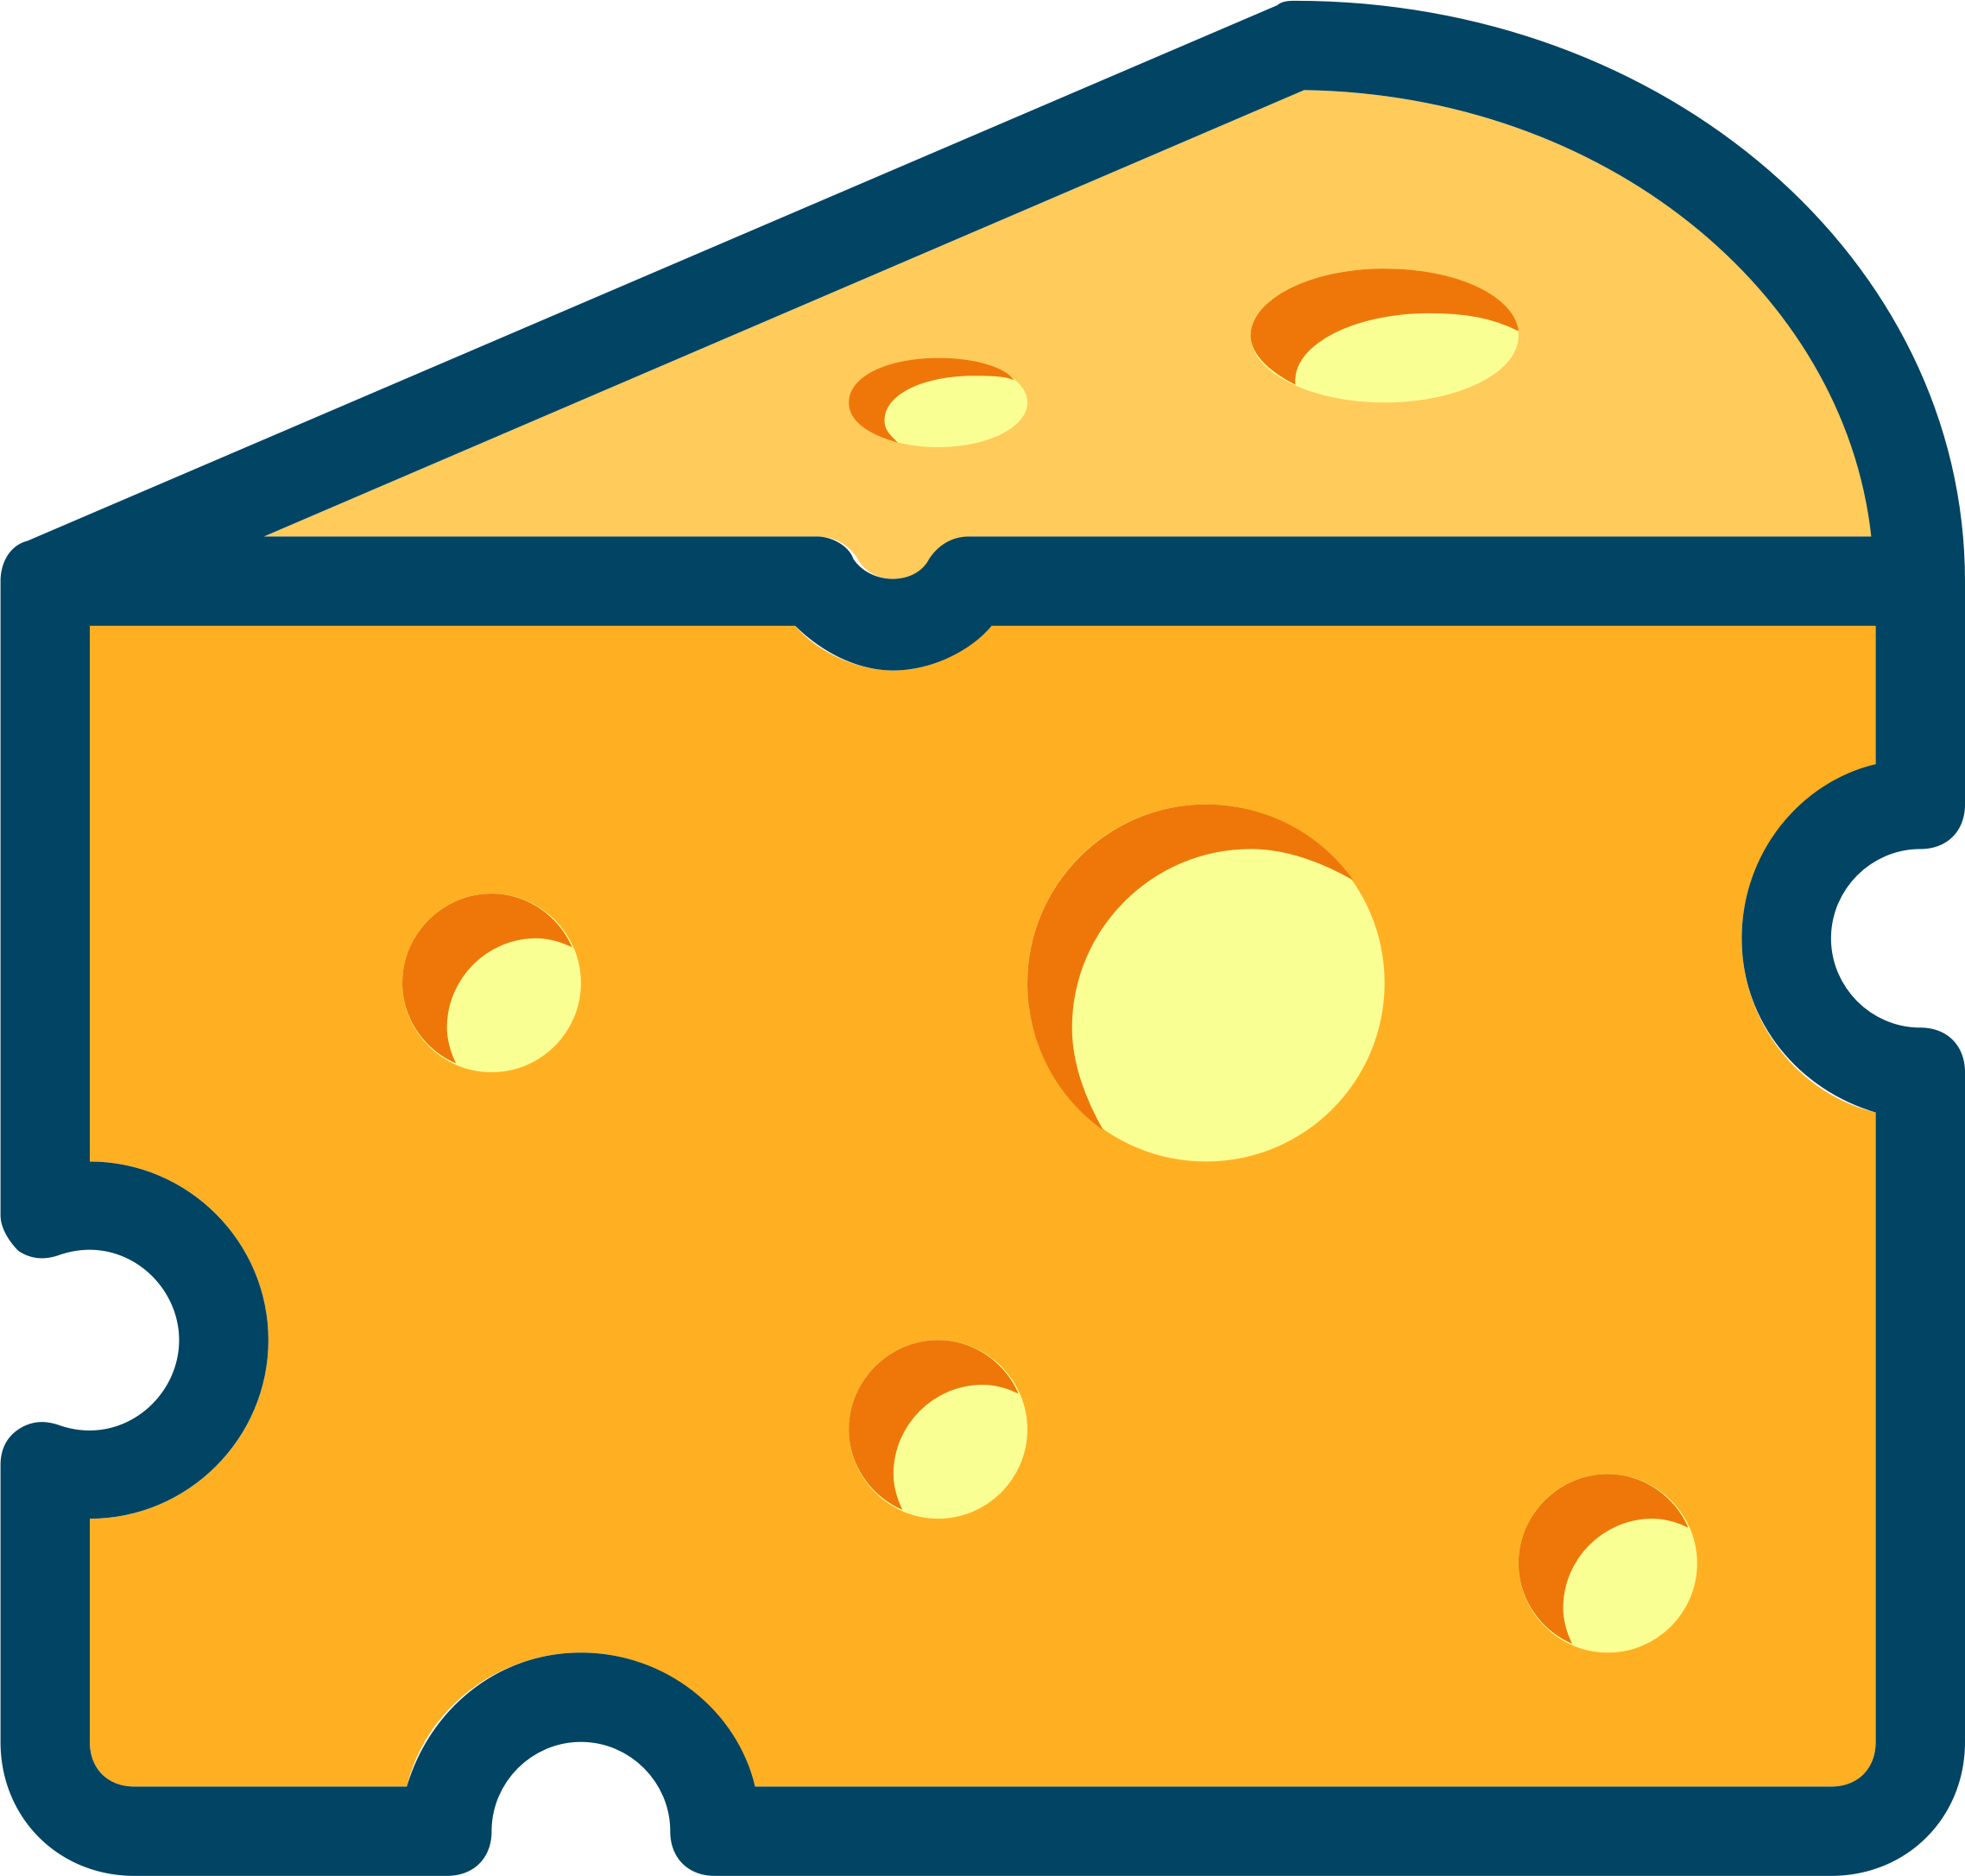 swiss cheese by cactus cowboy